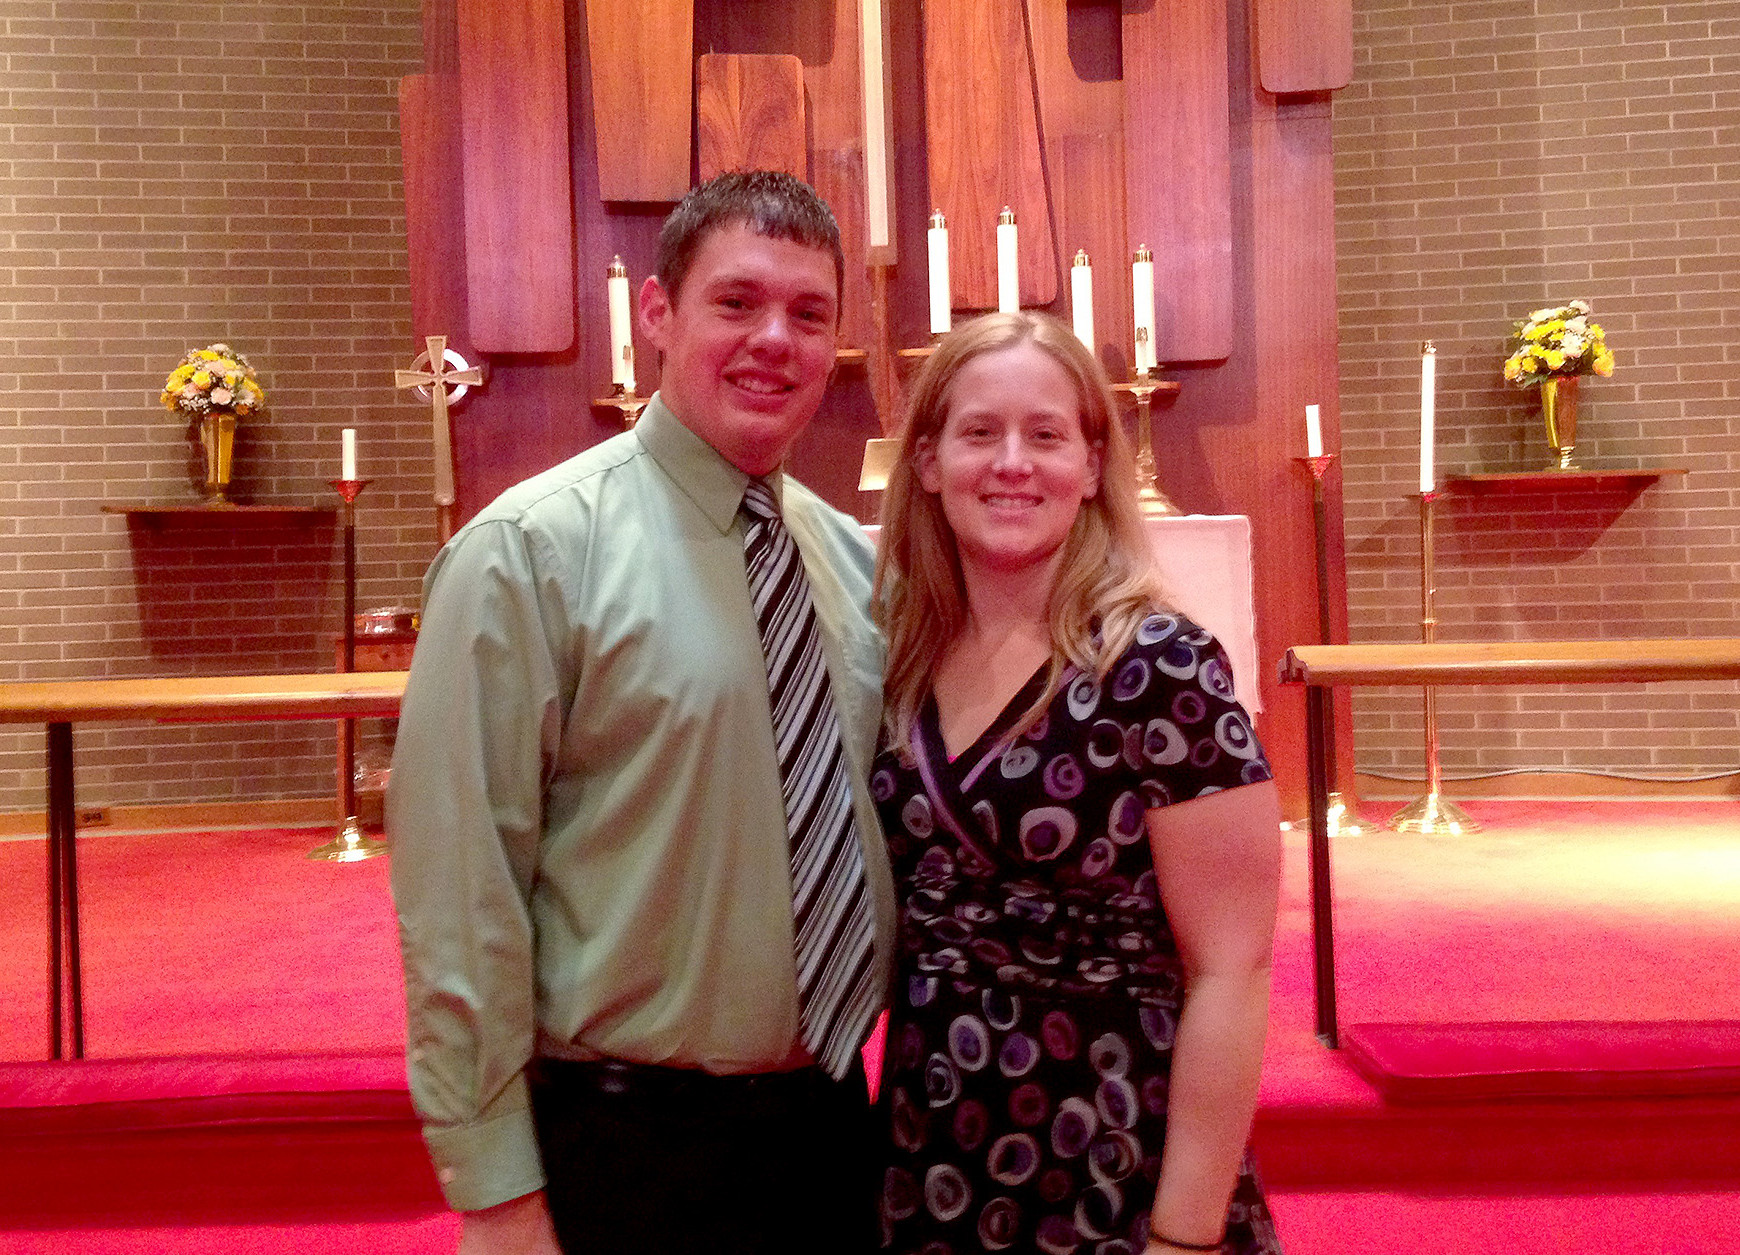 (above) Pastor Grewe and his wife, Melinda